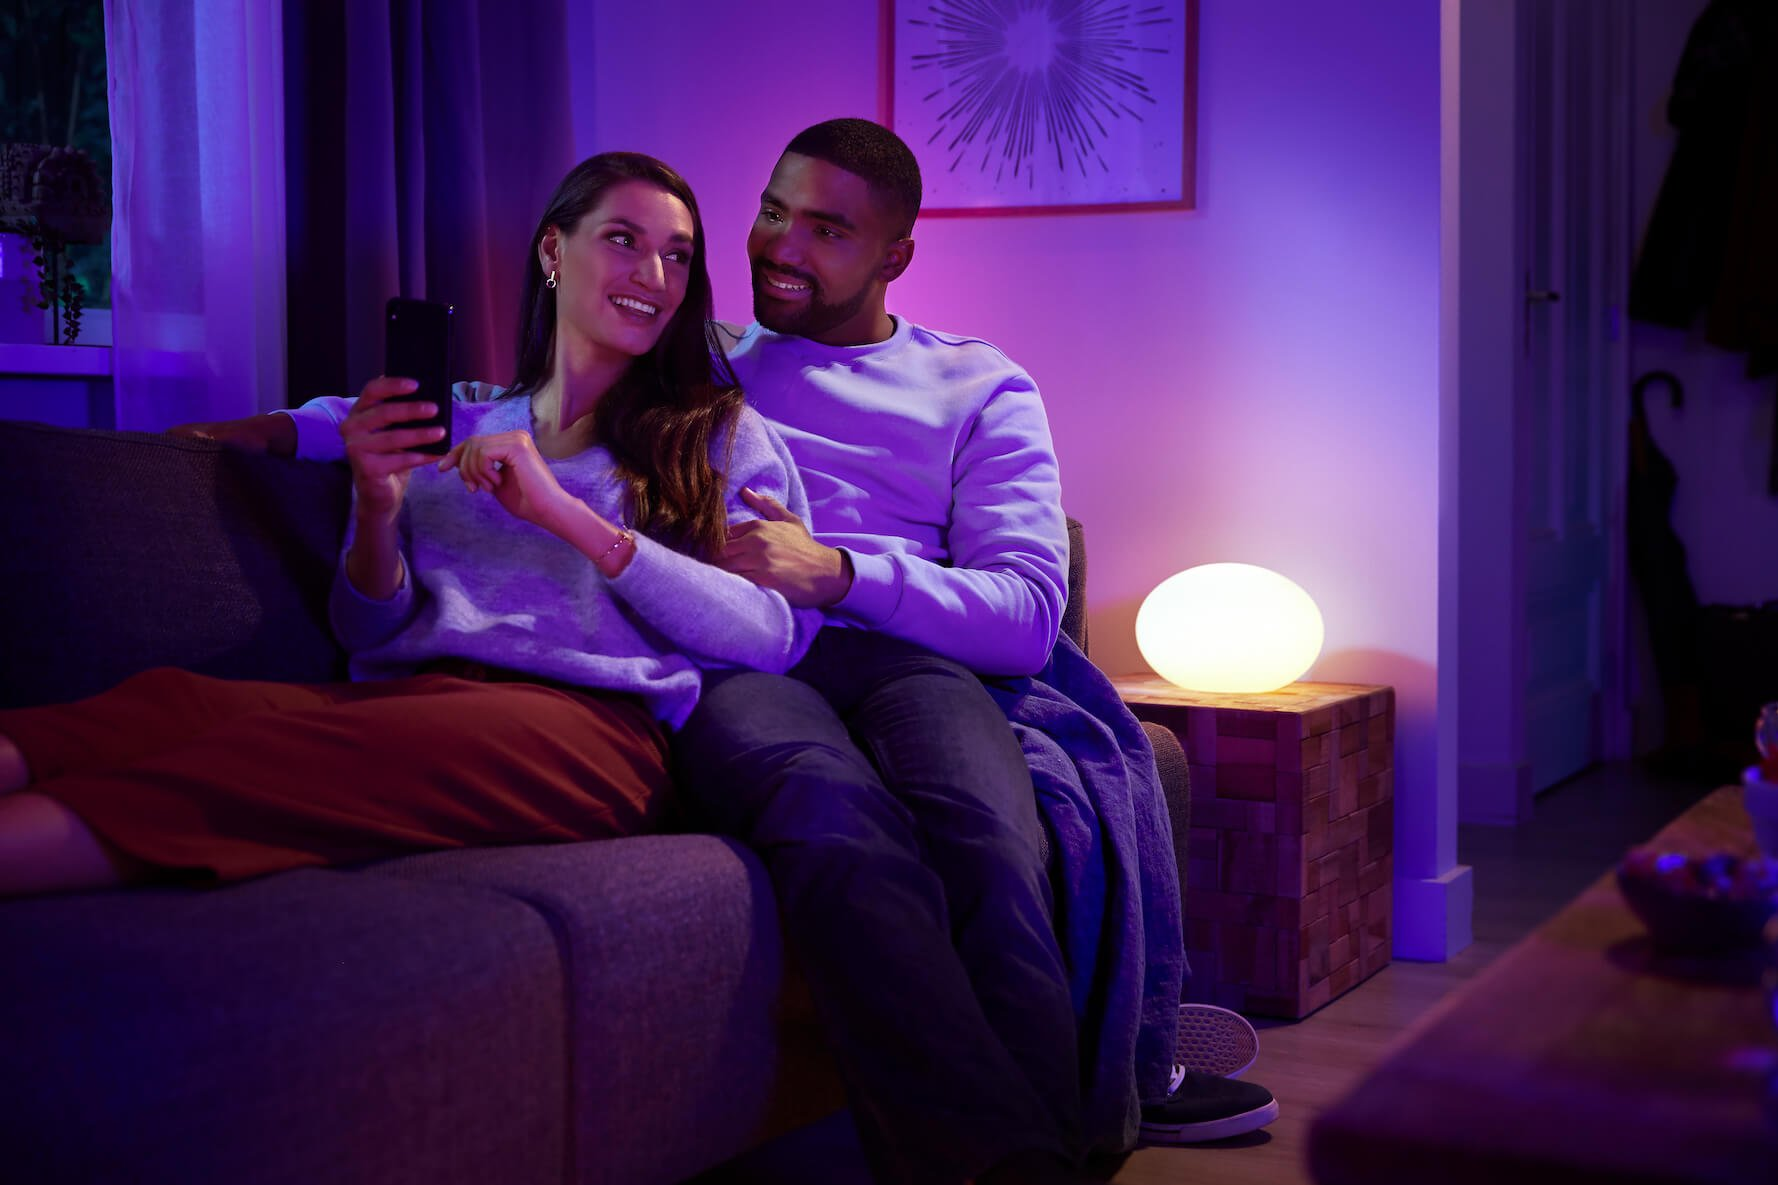 Set the mood with your phone and smart lighting